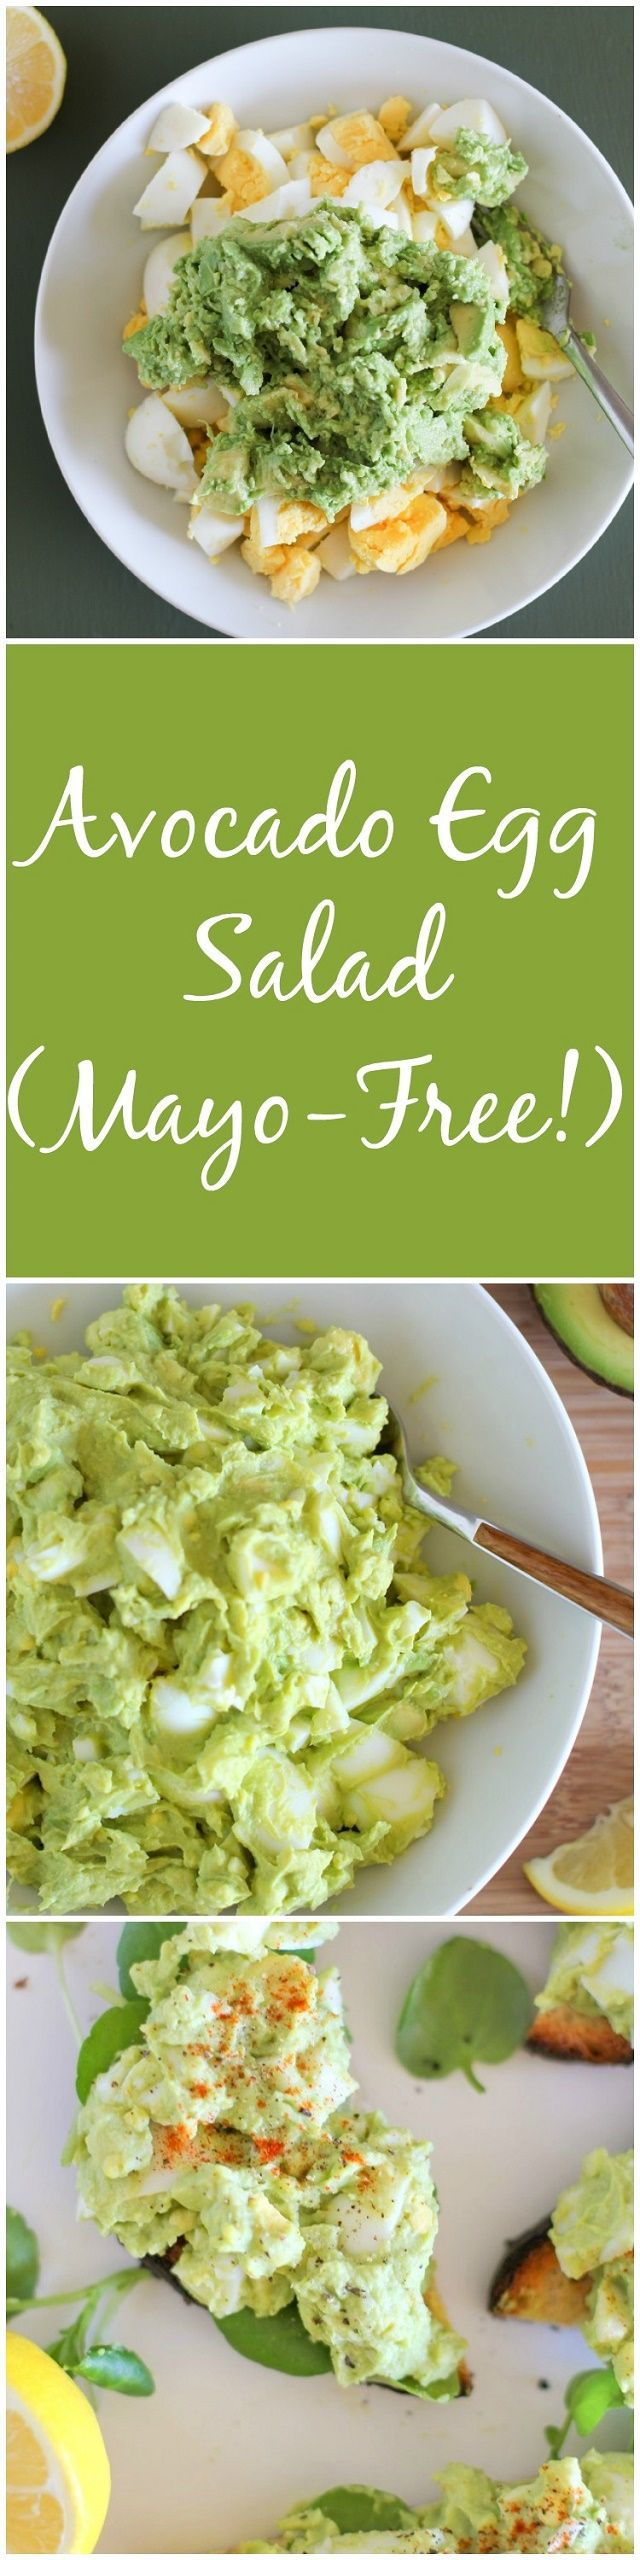 Avocado Egg Salad - an easy 4-ingredient lunch recipe.